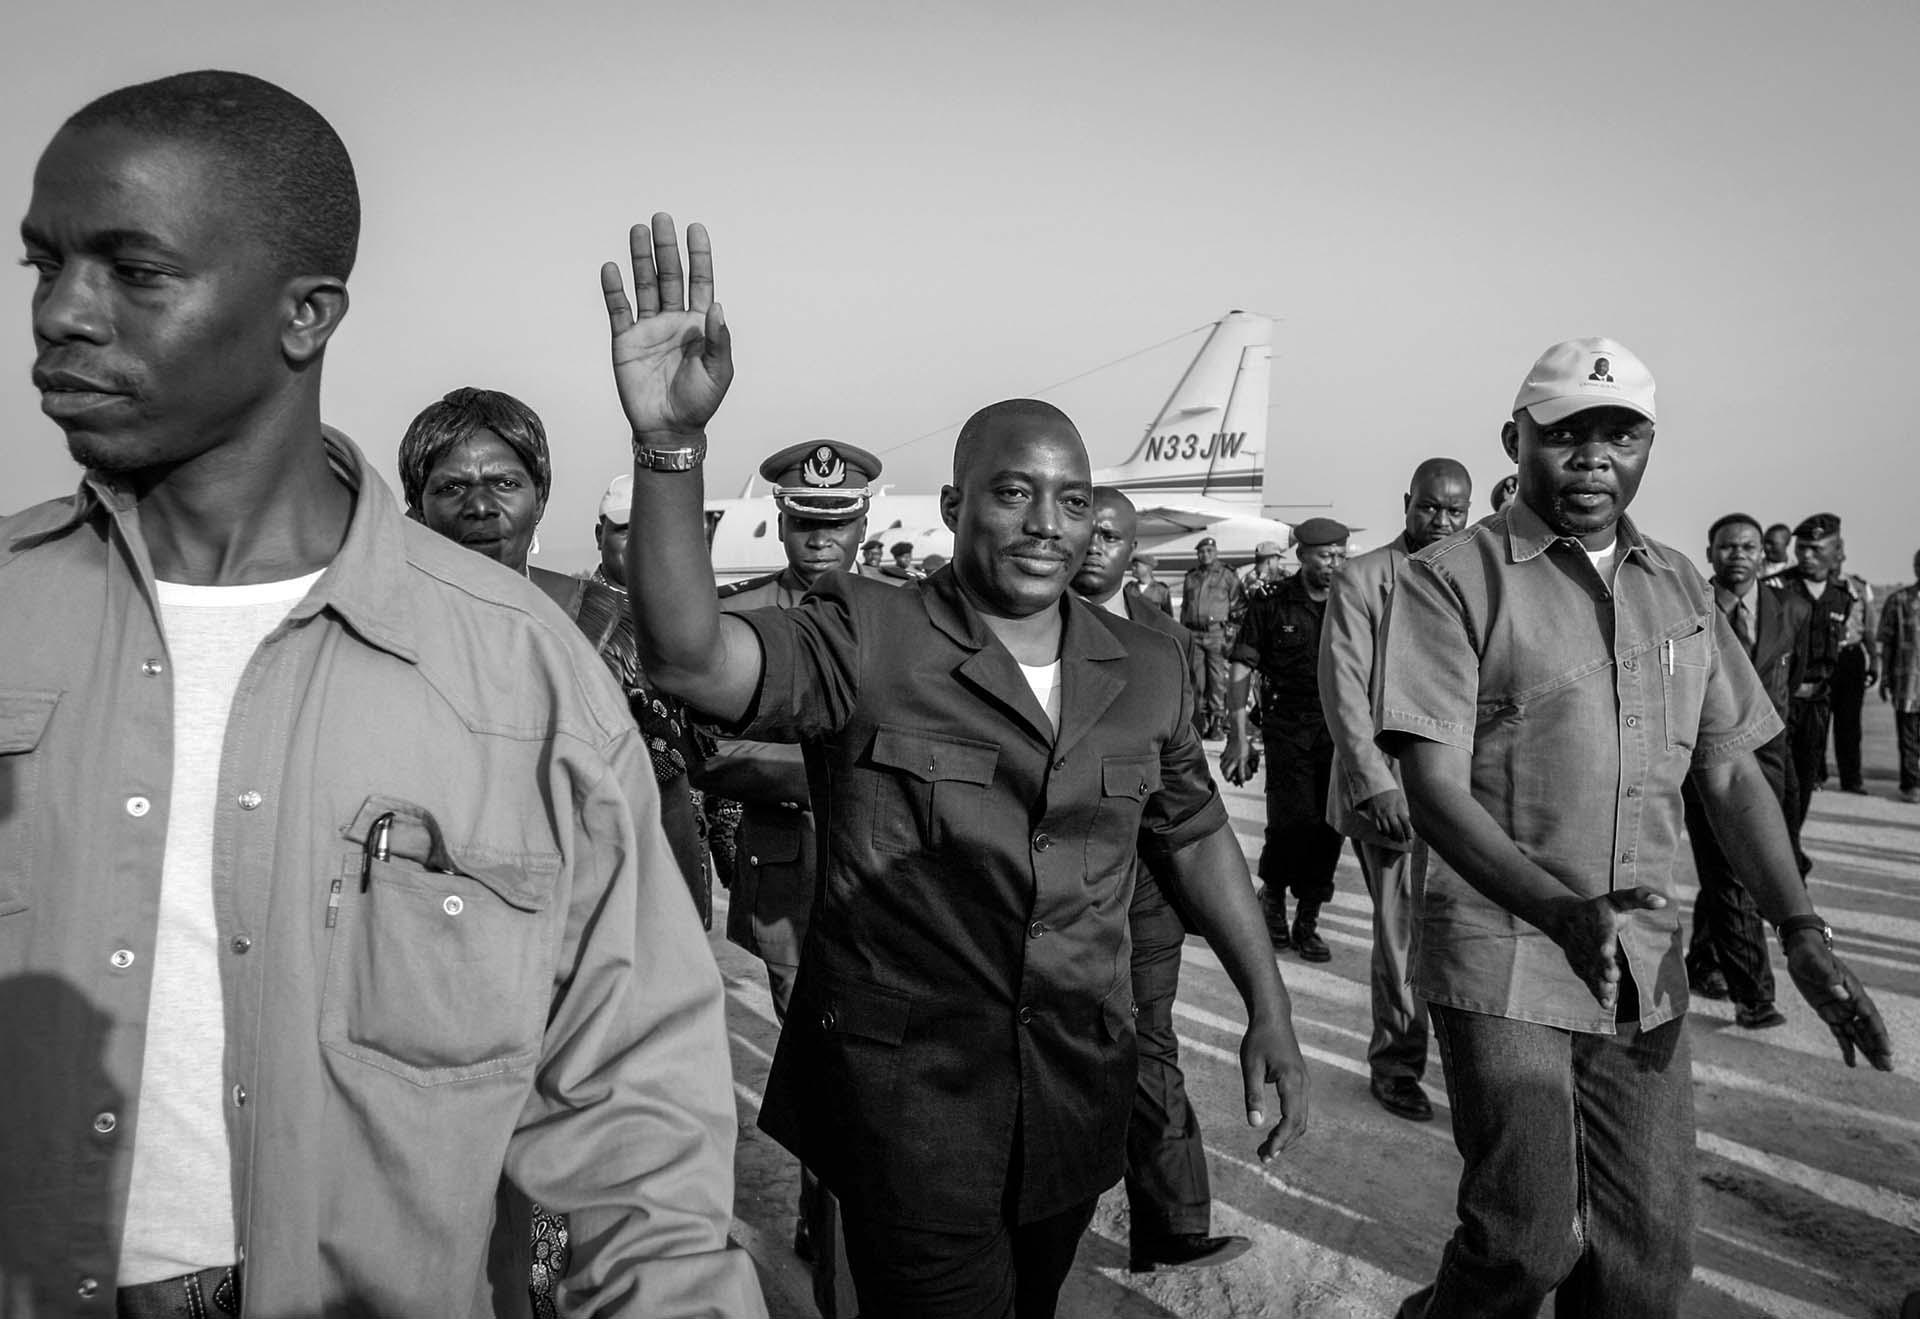 Joseph Kabila greets his supporters at Bunia airport July 12, 2006. The war-torn country had not had a national for election more than 40 years ago. Kabila retained his presidency, again in 2011. He attempted but failed to amend constitution so he can run for a 3rd term.